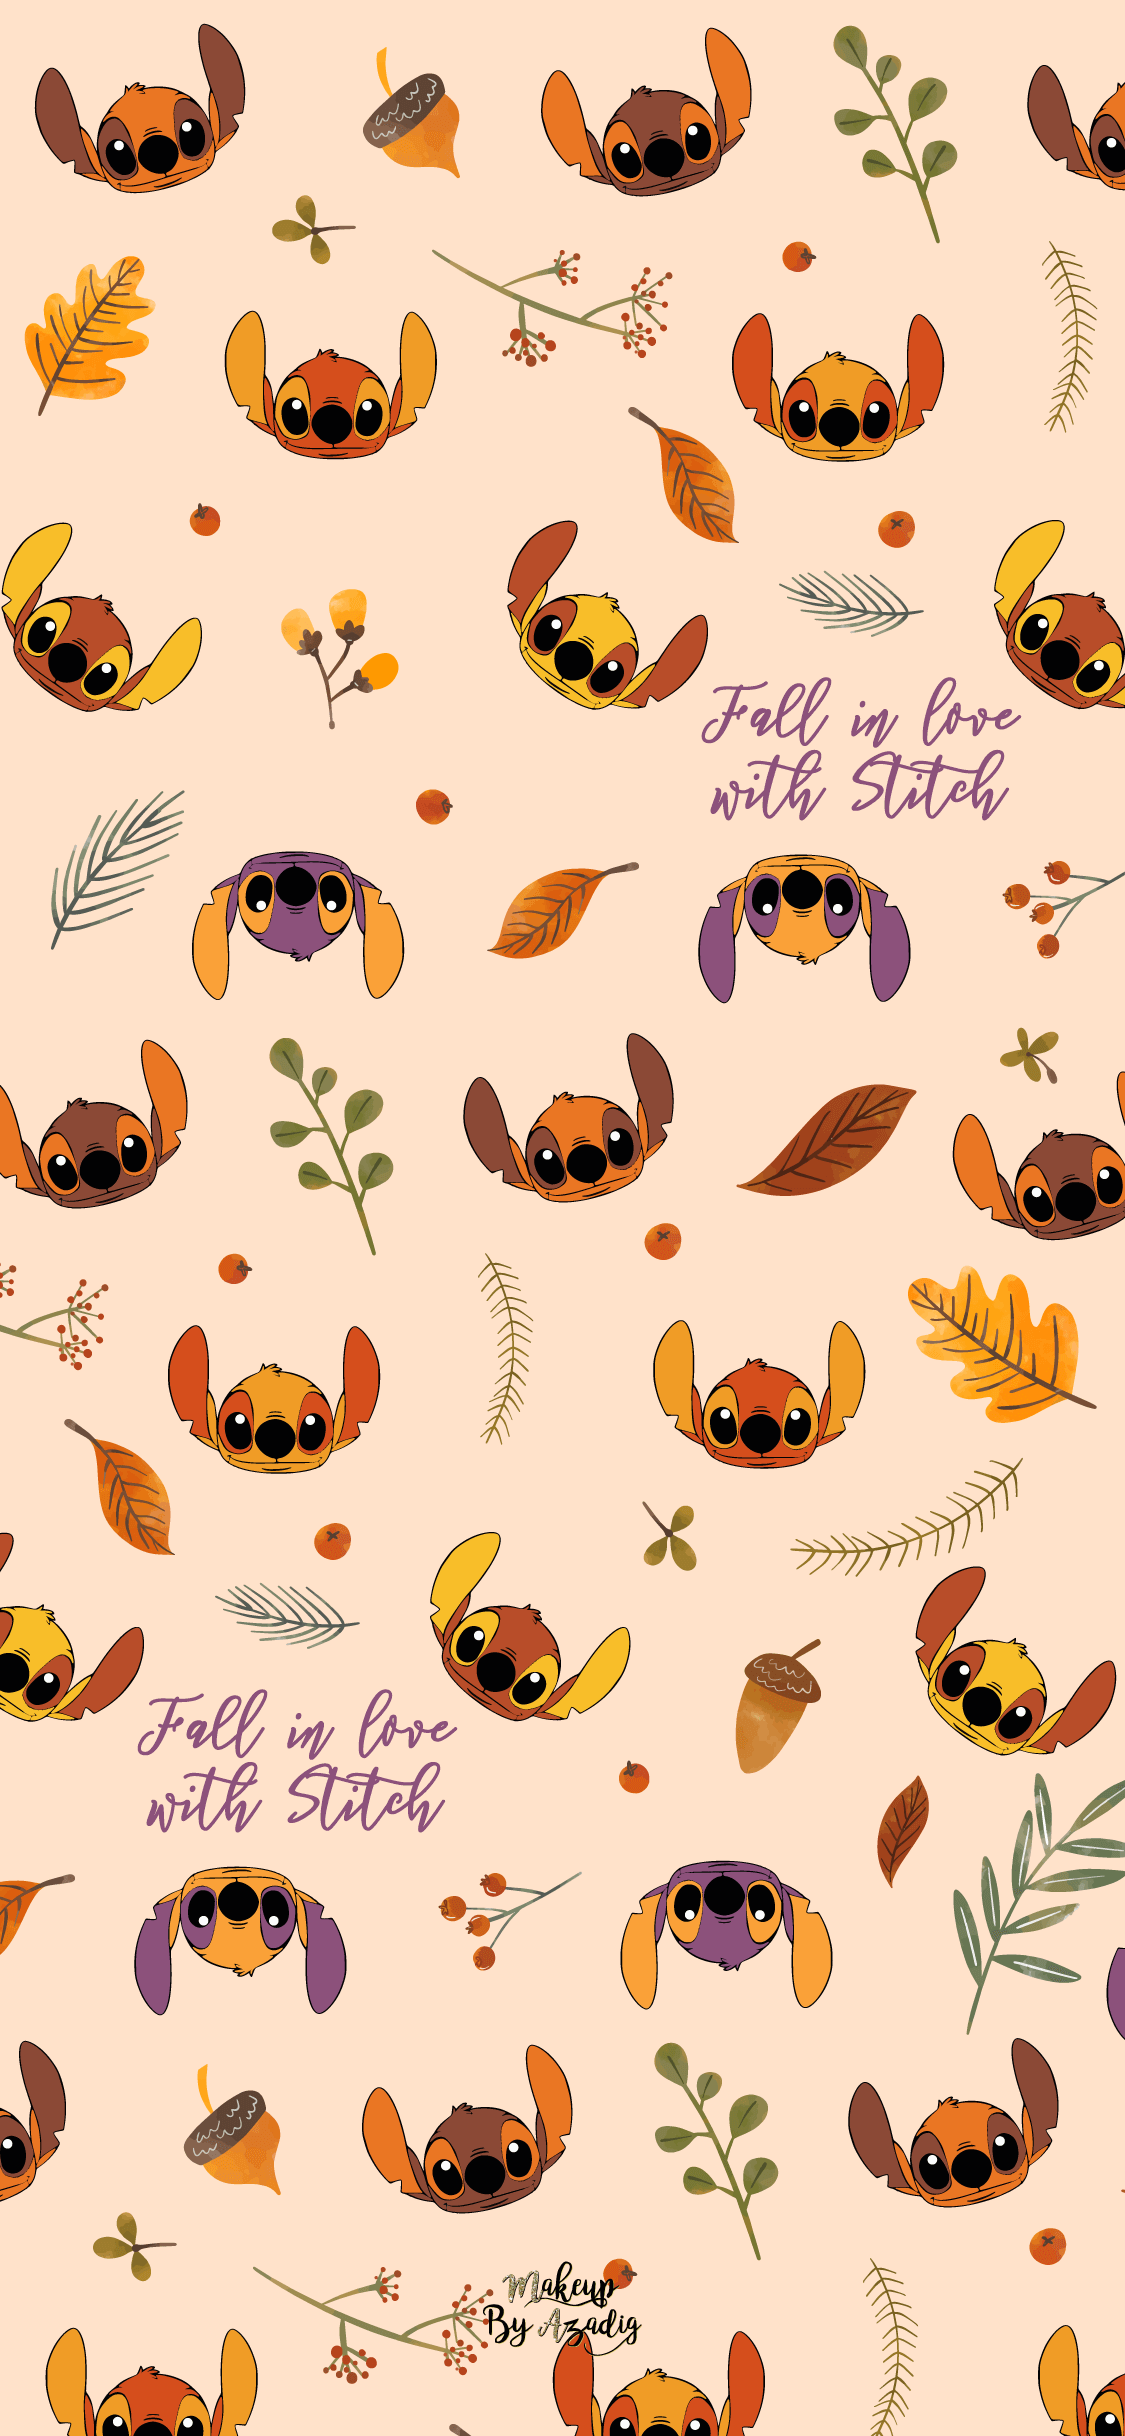 fond-decran-wallpaper-stitch-autumn-automne-fallinlove-disney-iphone-X-makeupbyazadig-tendance